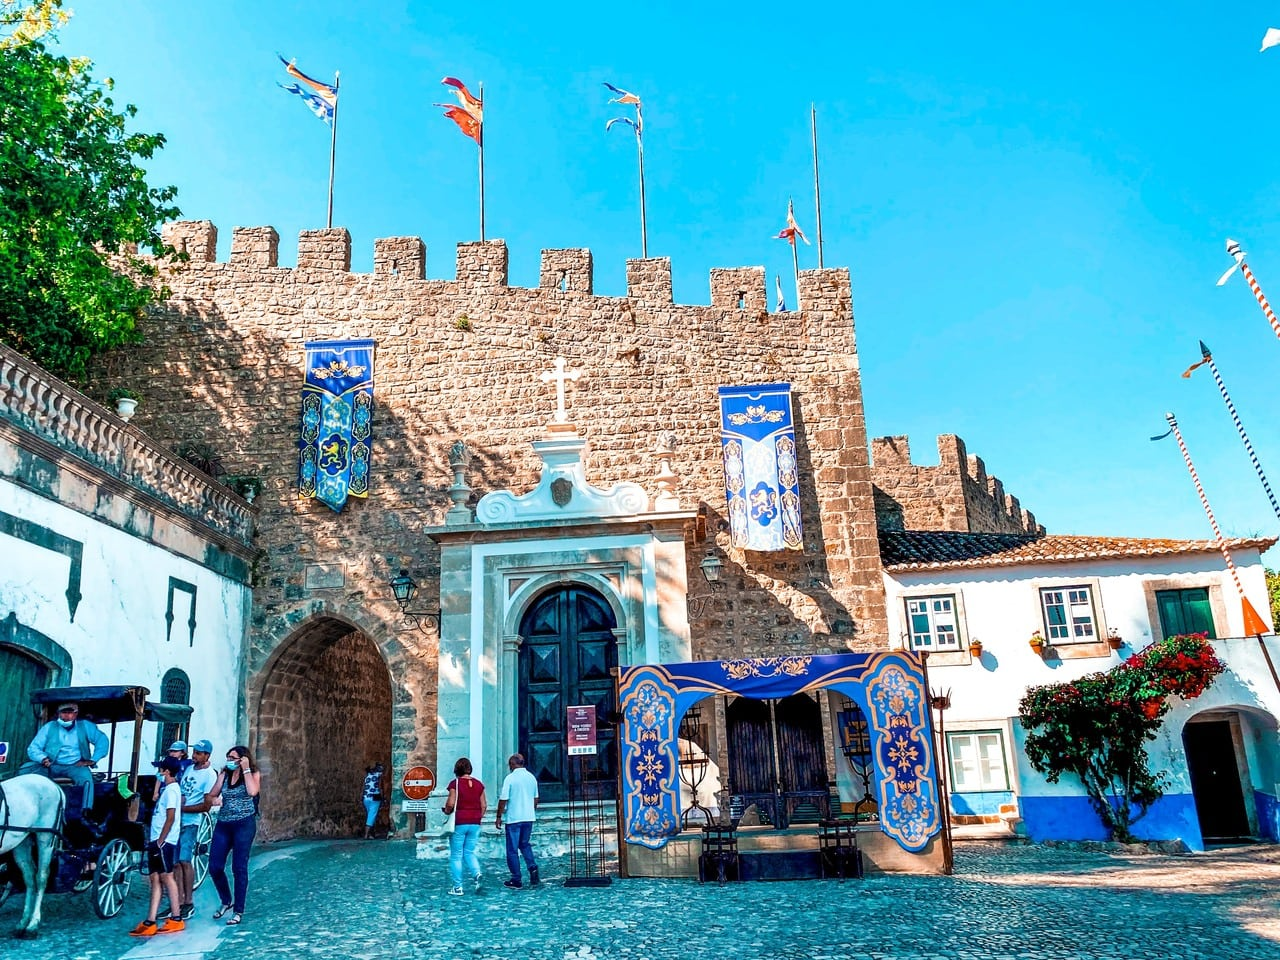 Entrance to the walled medieval town of Obidos